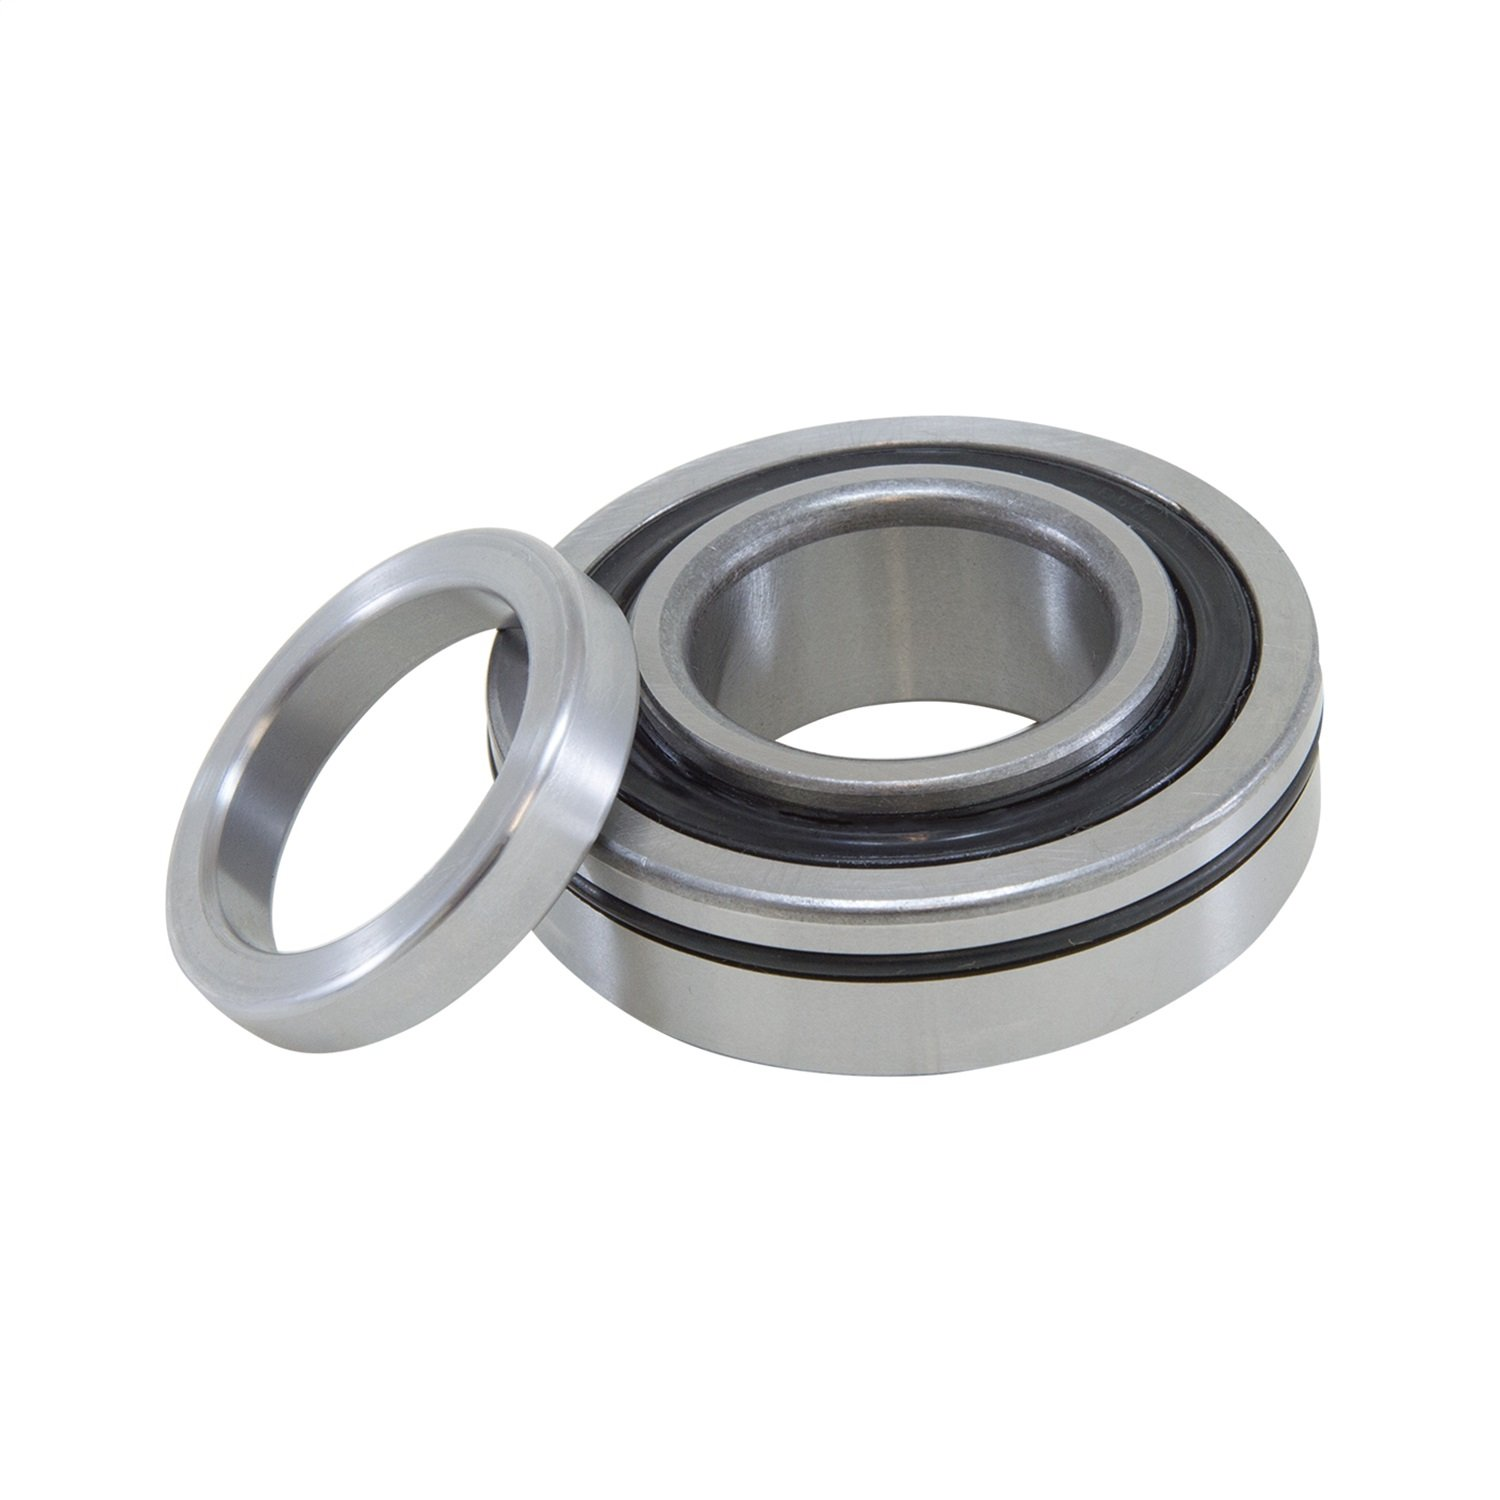 Yukon (AK RW508ER) 3.150'' O.D. Axle Bearing for Ford 9'' Differential